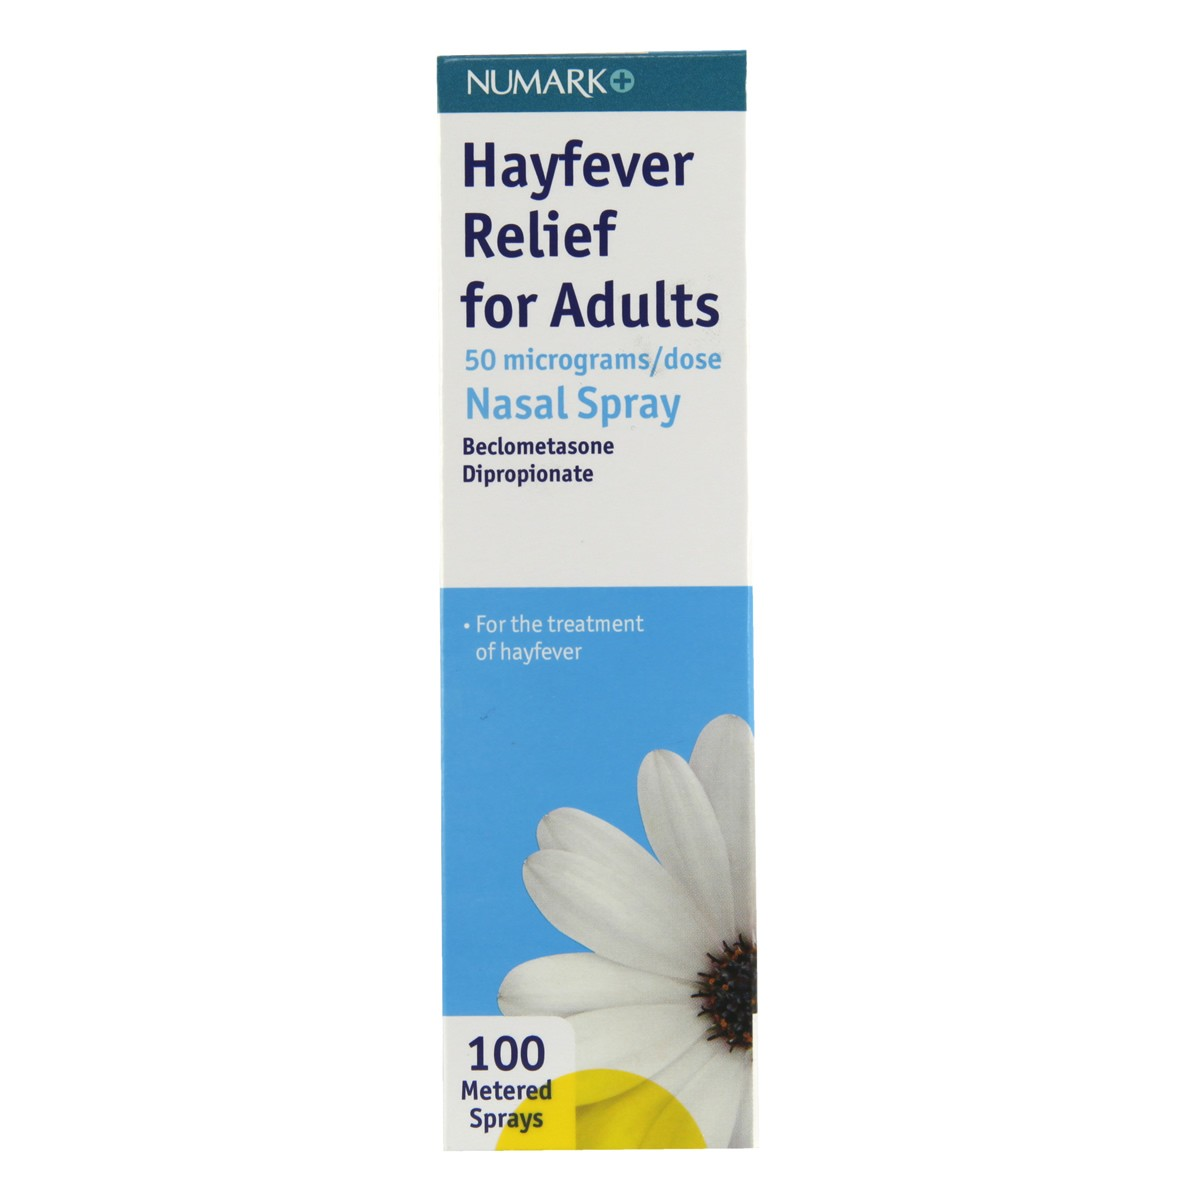 Hayfever Relief for Adults Nasal Spray